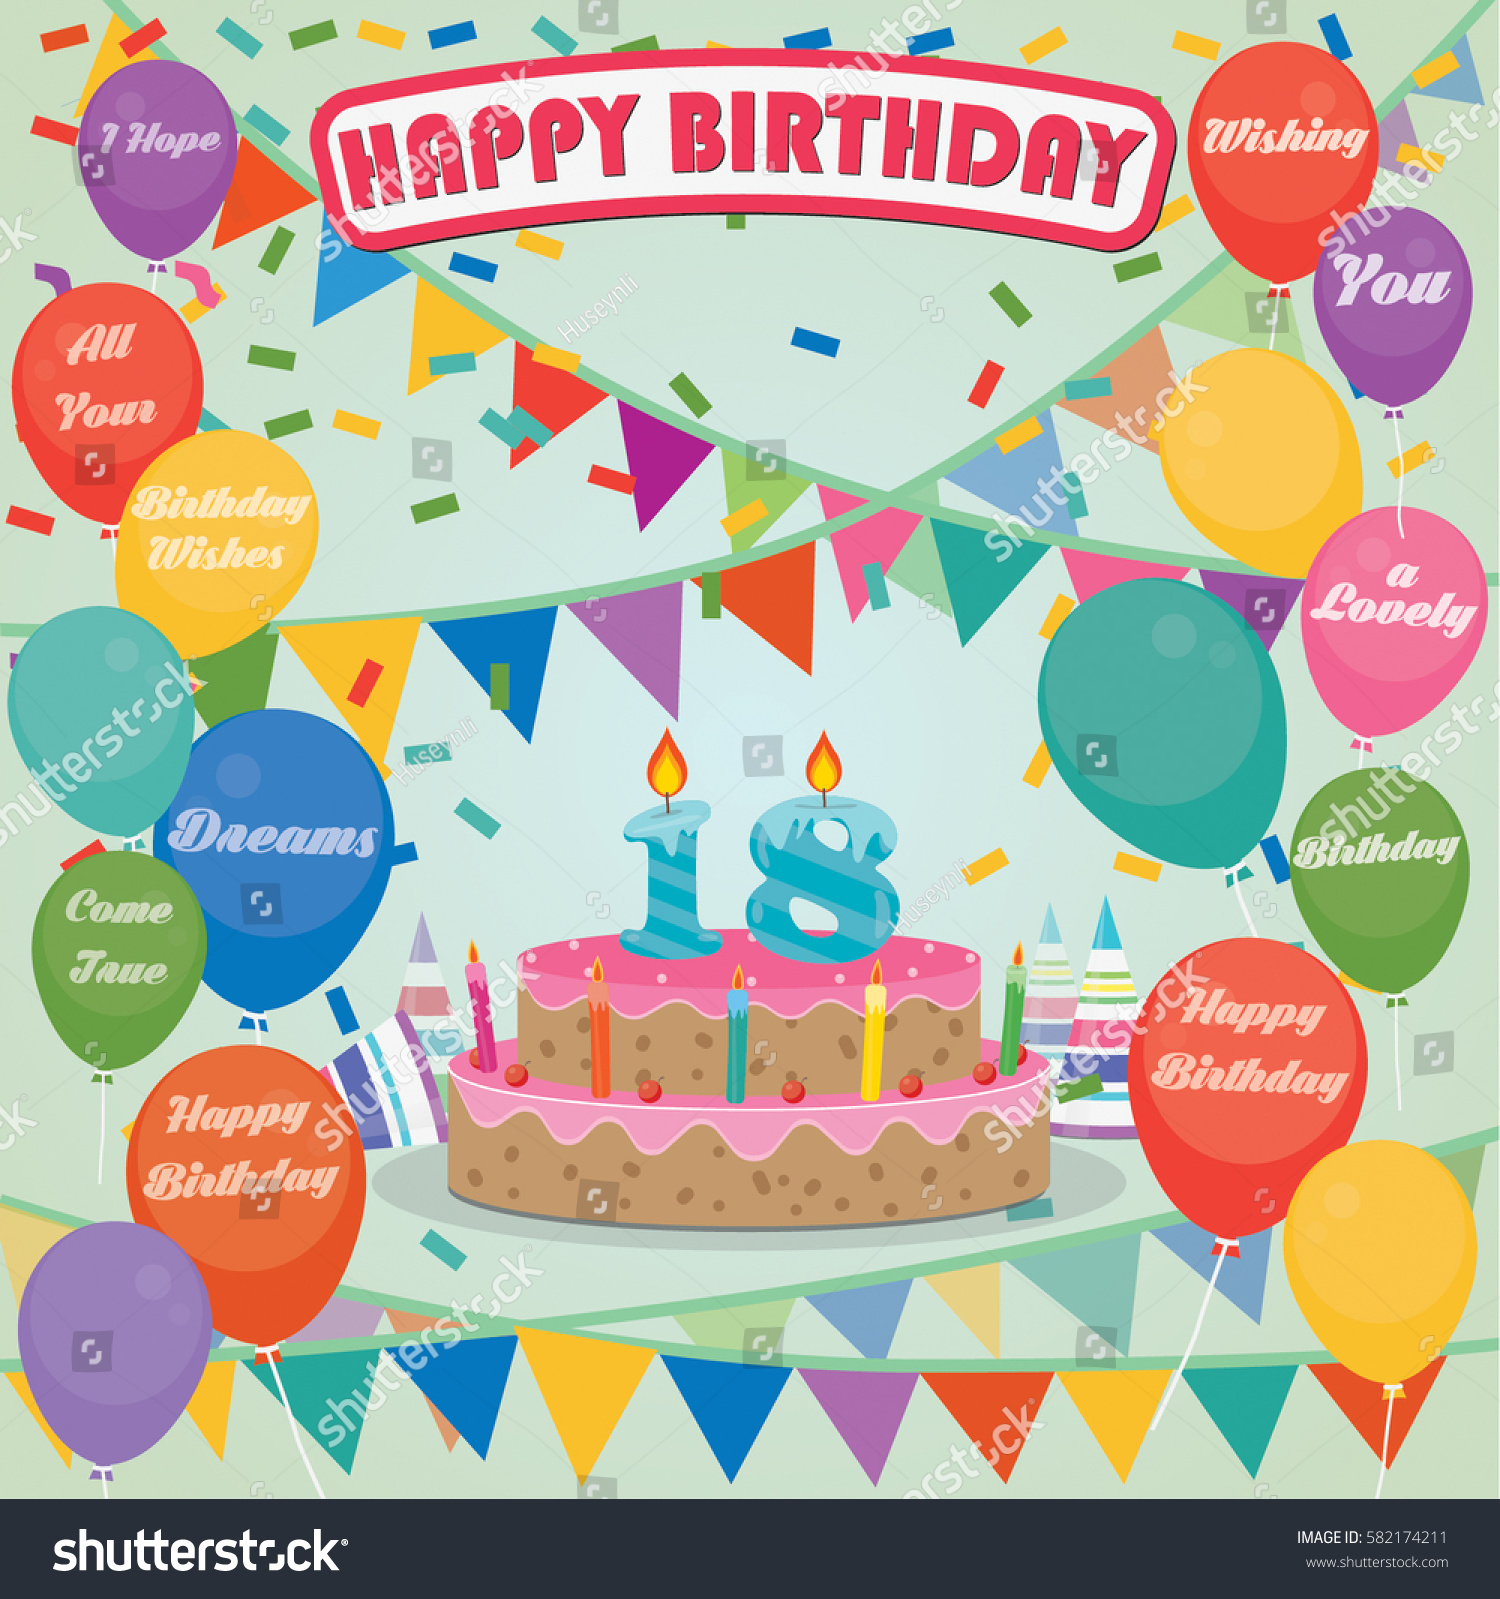 18th Birthday Cake And Decoration Background In Flat Design With Balloons Candles